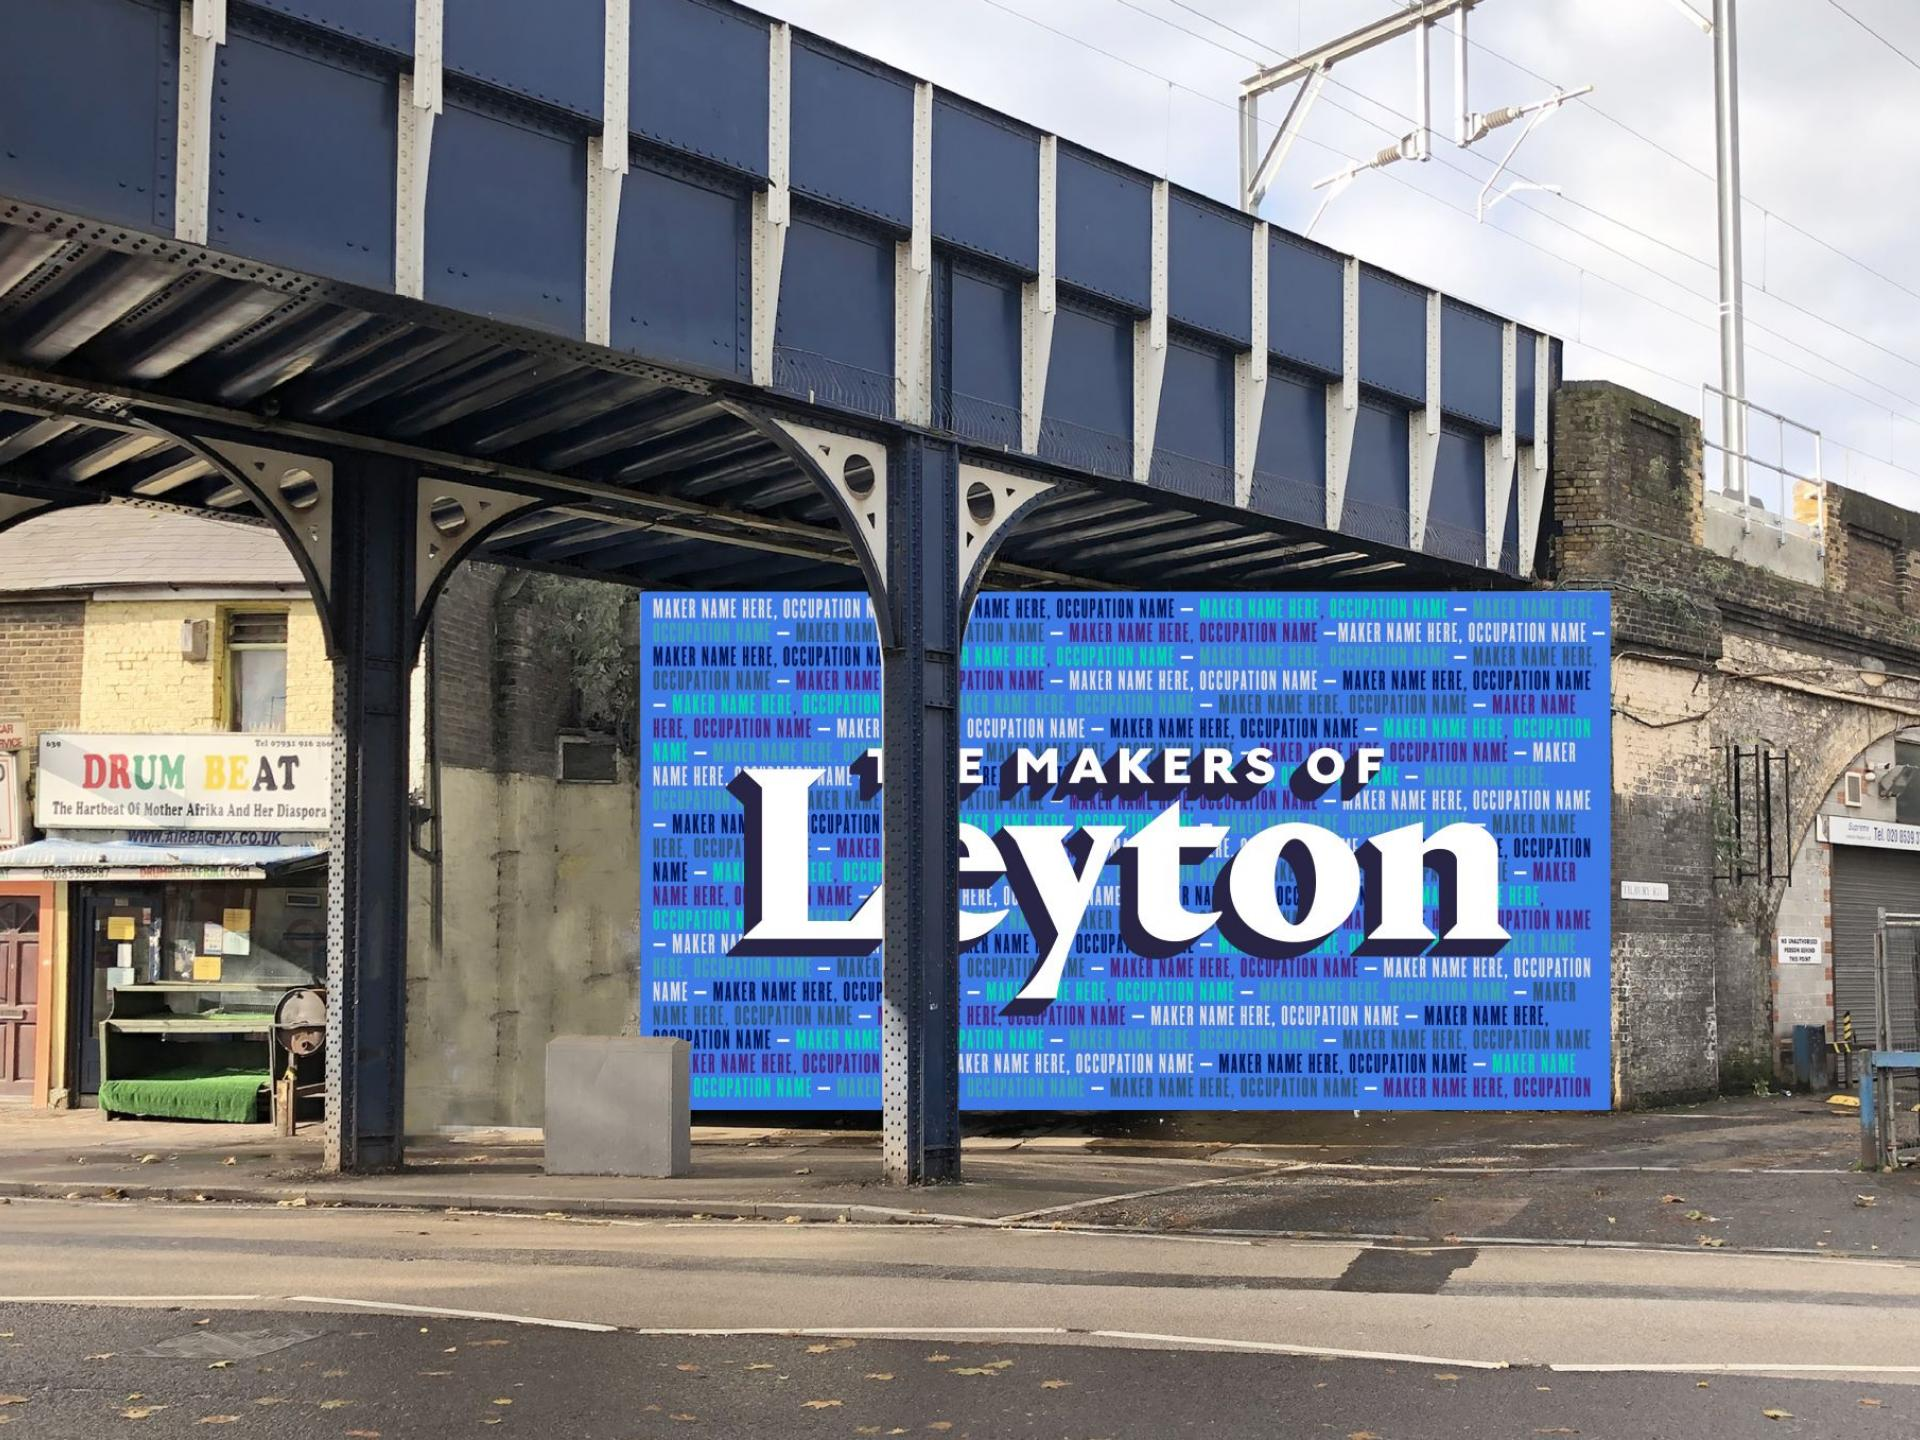 The Makers of Leyton by Phillips Walmsley - Indicative image